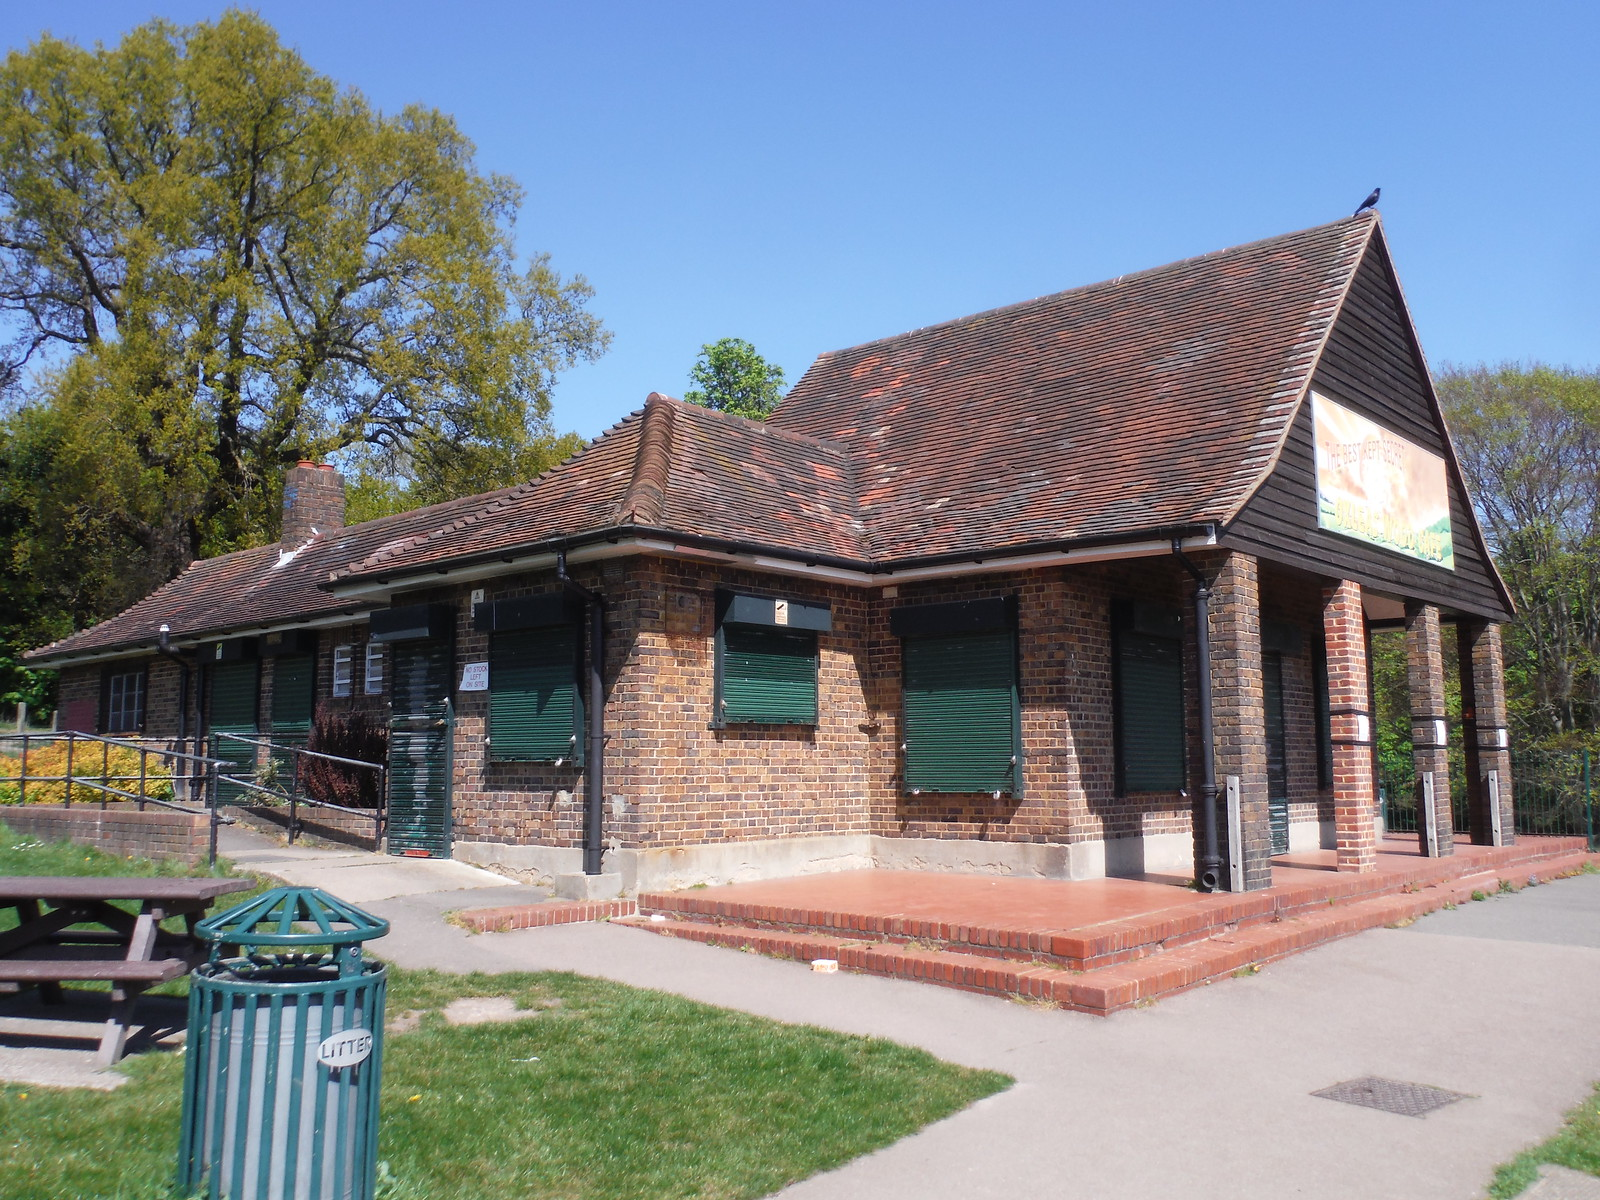 Oxleas Wood Café SWC Short Walk 44 - Oxleas Wood and Shooters Hill (Falconwood Circular)